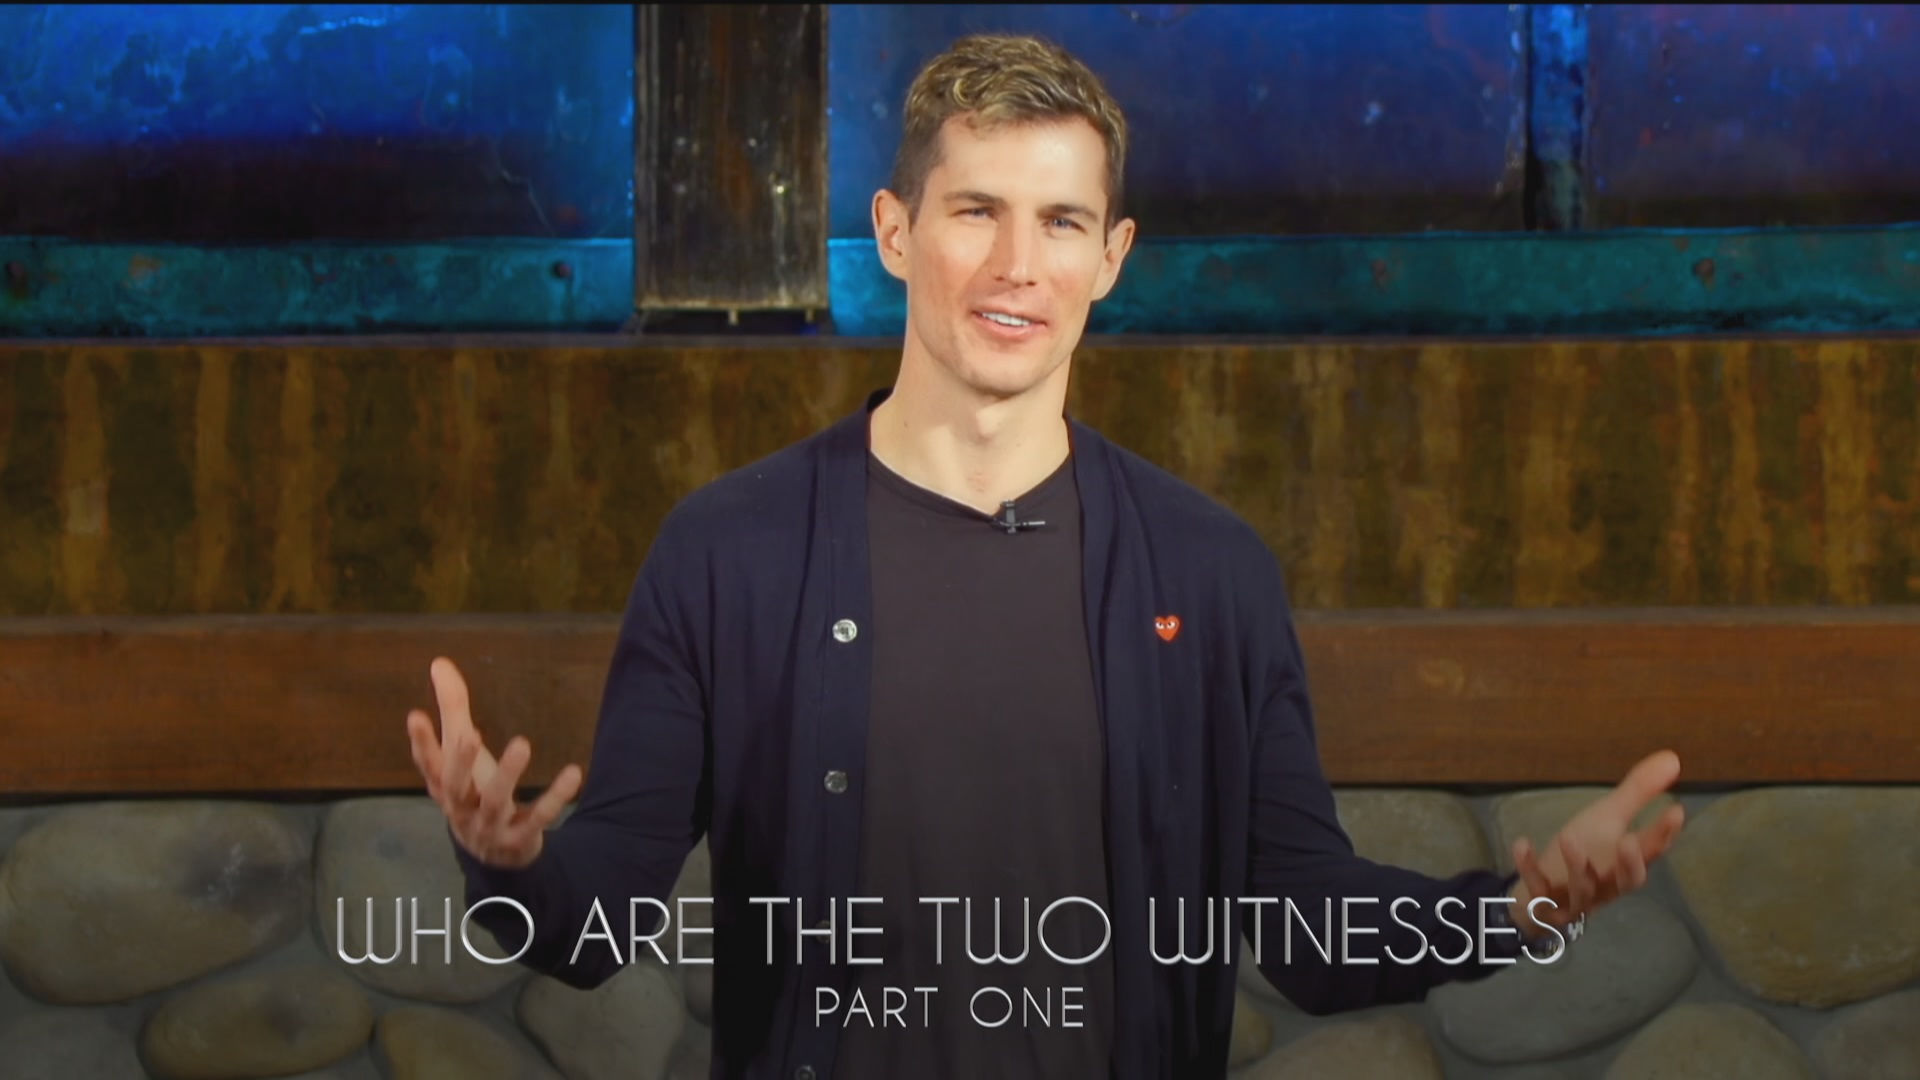 Who Are The Two Witnesses Part 1